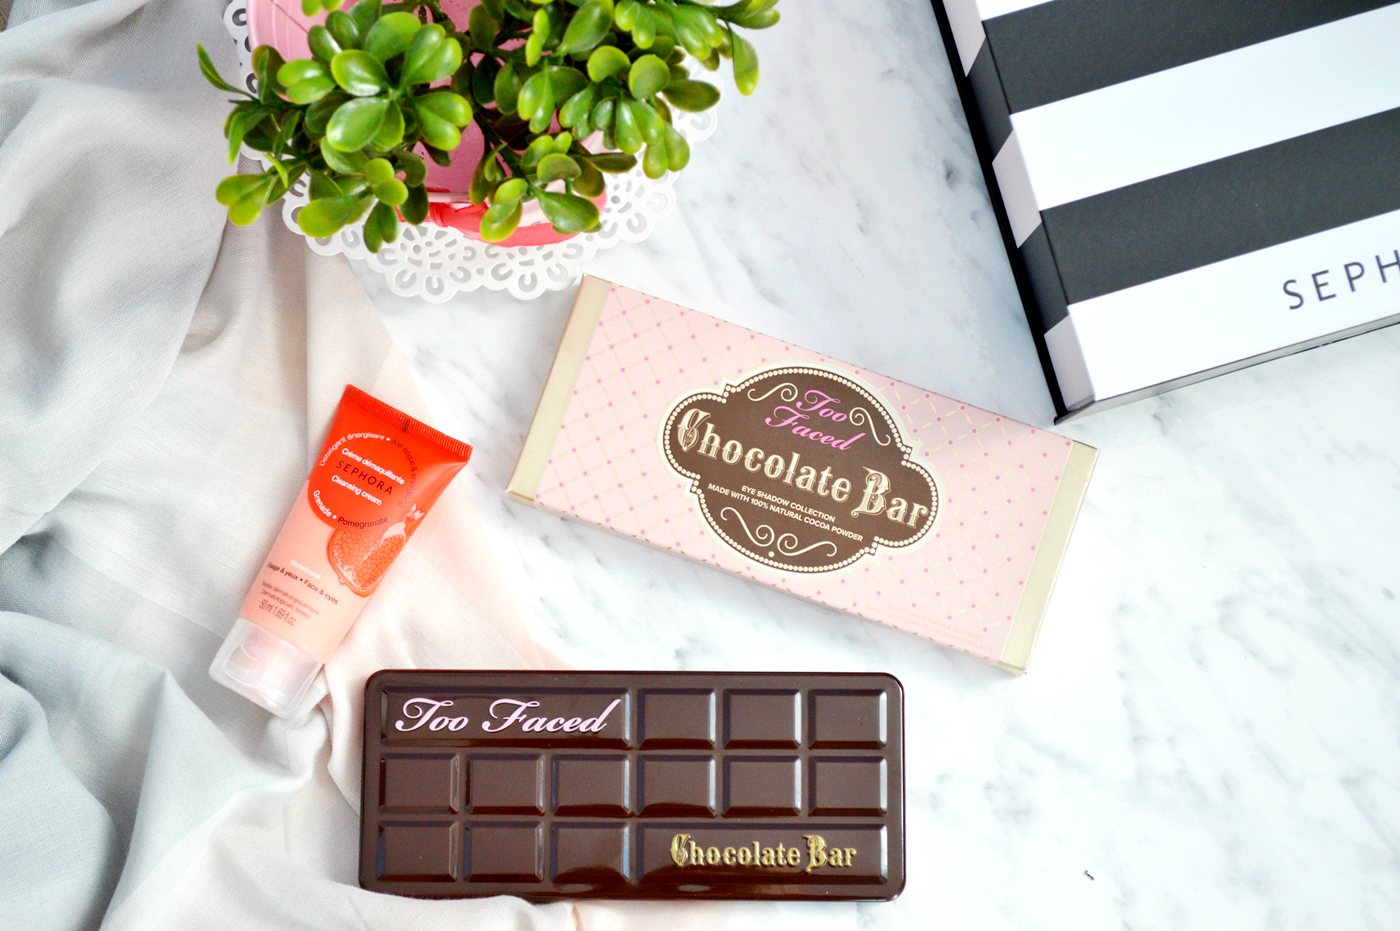 chocolate bar too faced paleta sephora